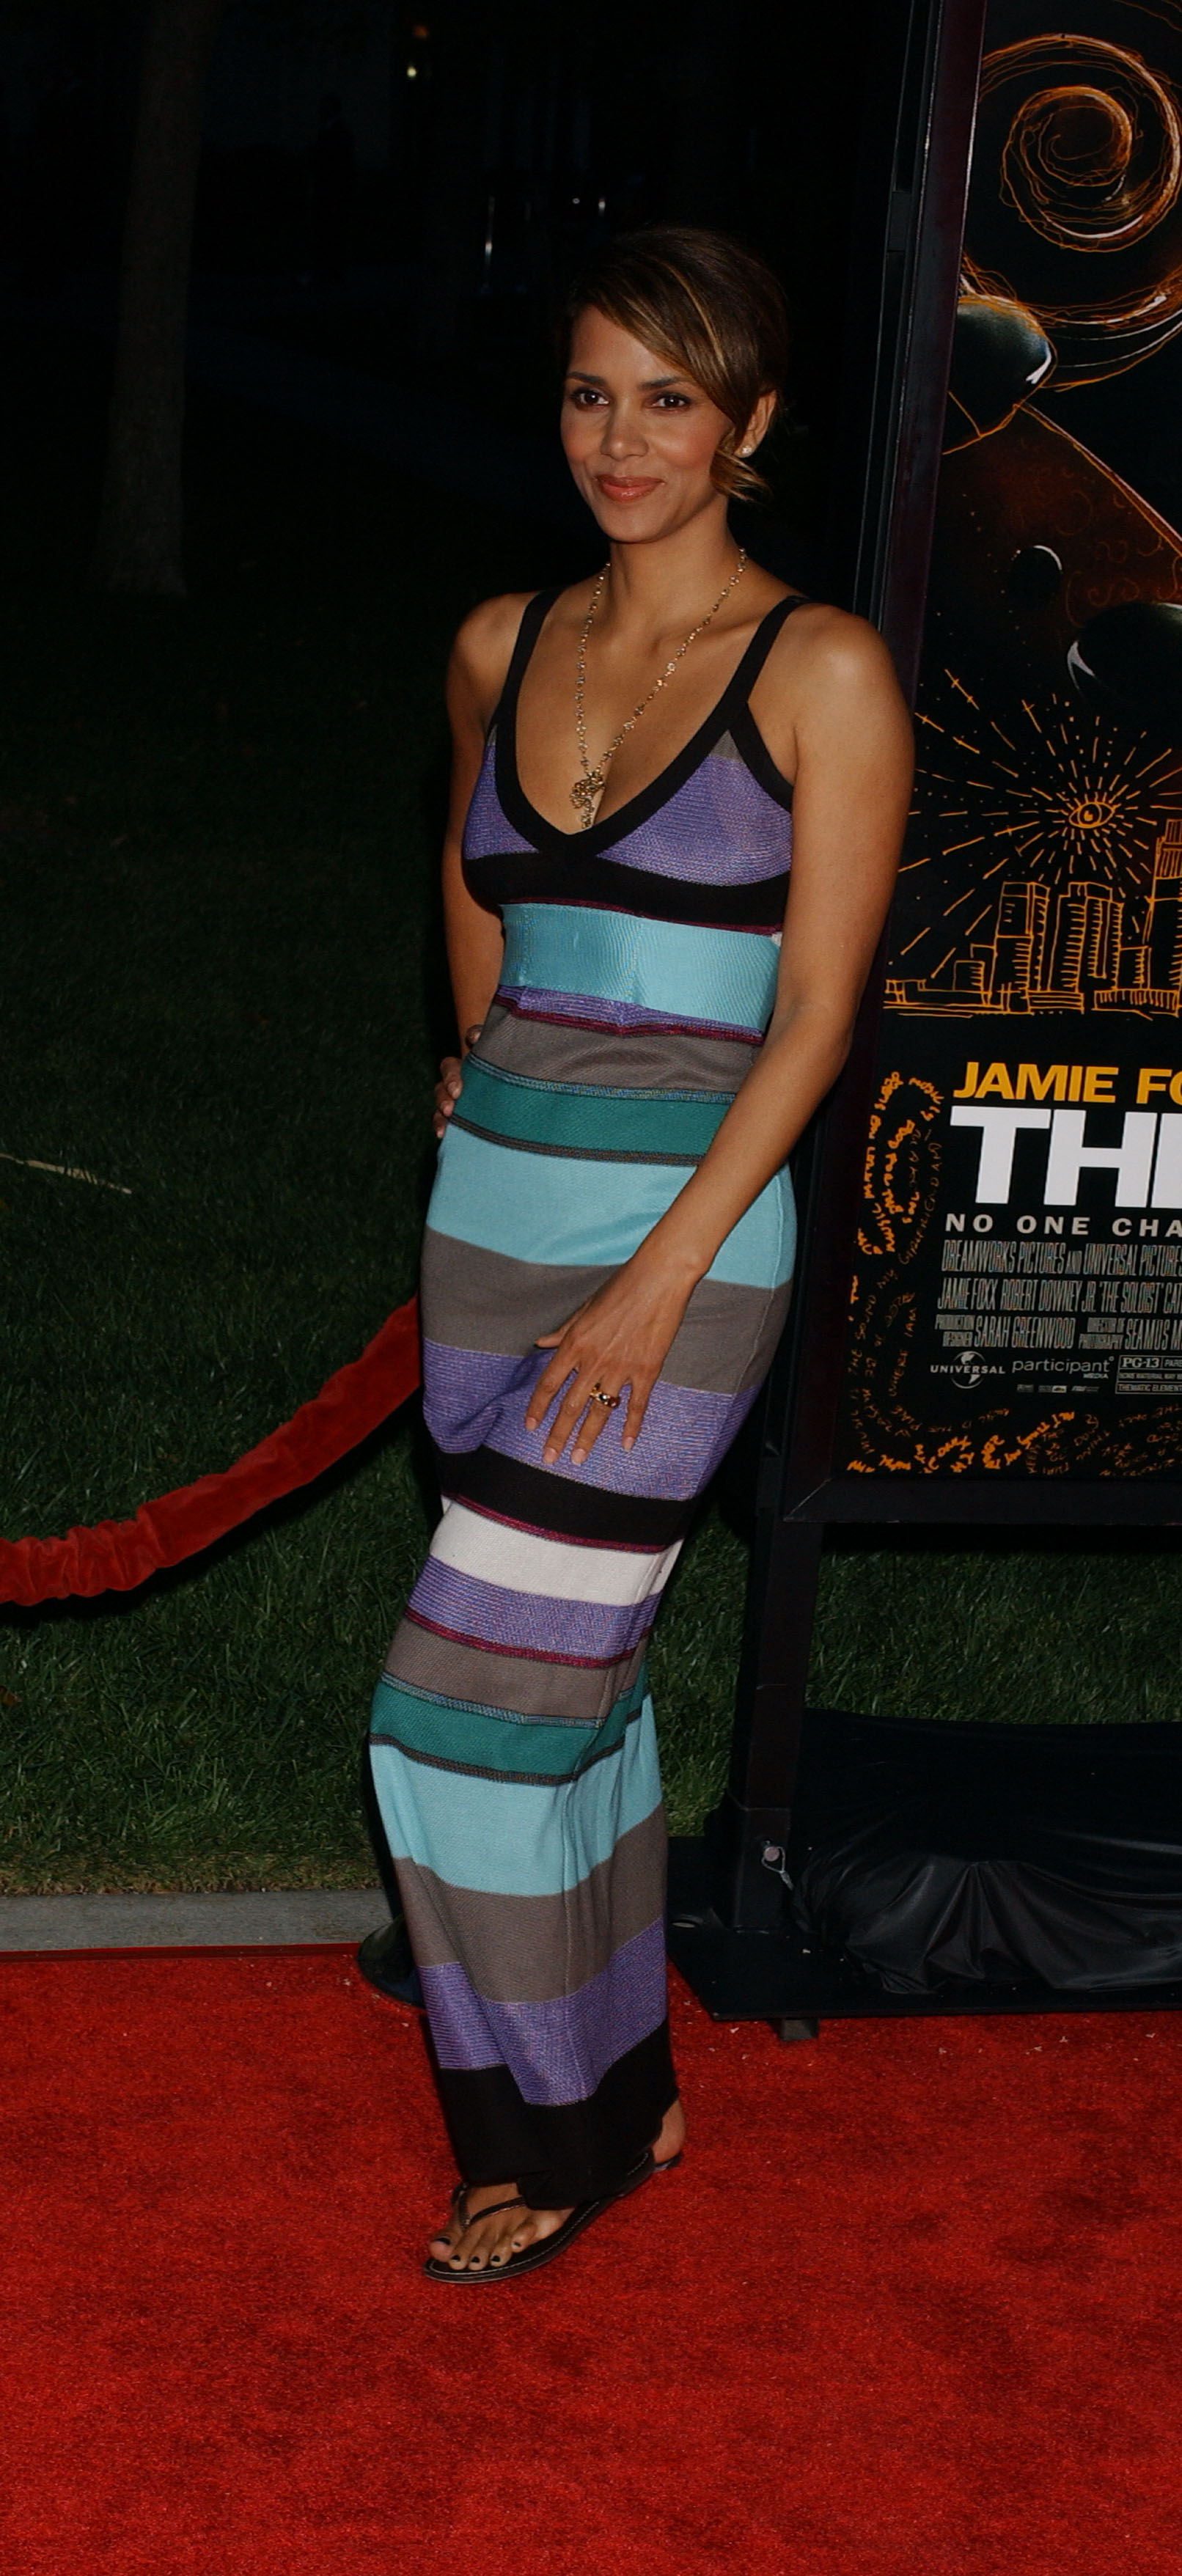 65649_Halle_Berry_The_Soloist_premiere_in_Los_Angeles_55_122_114lo.jpg